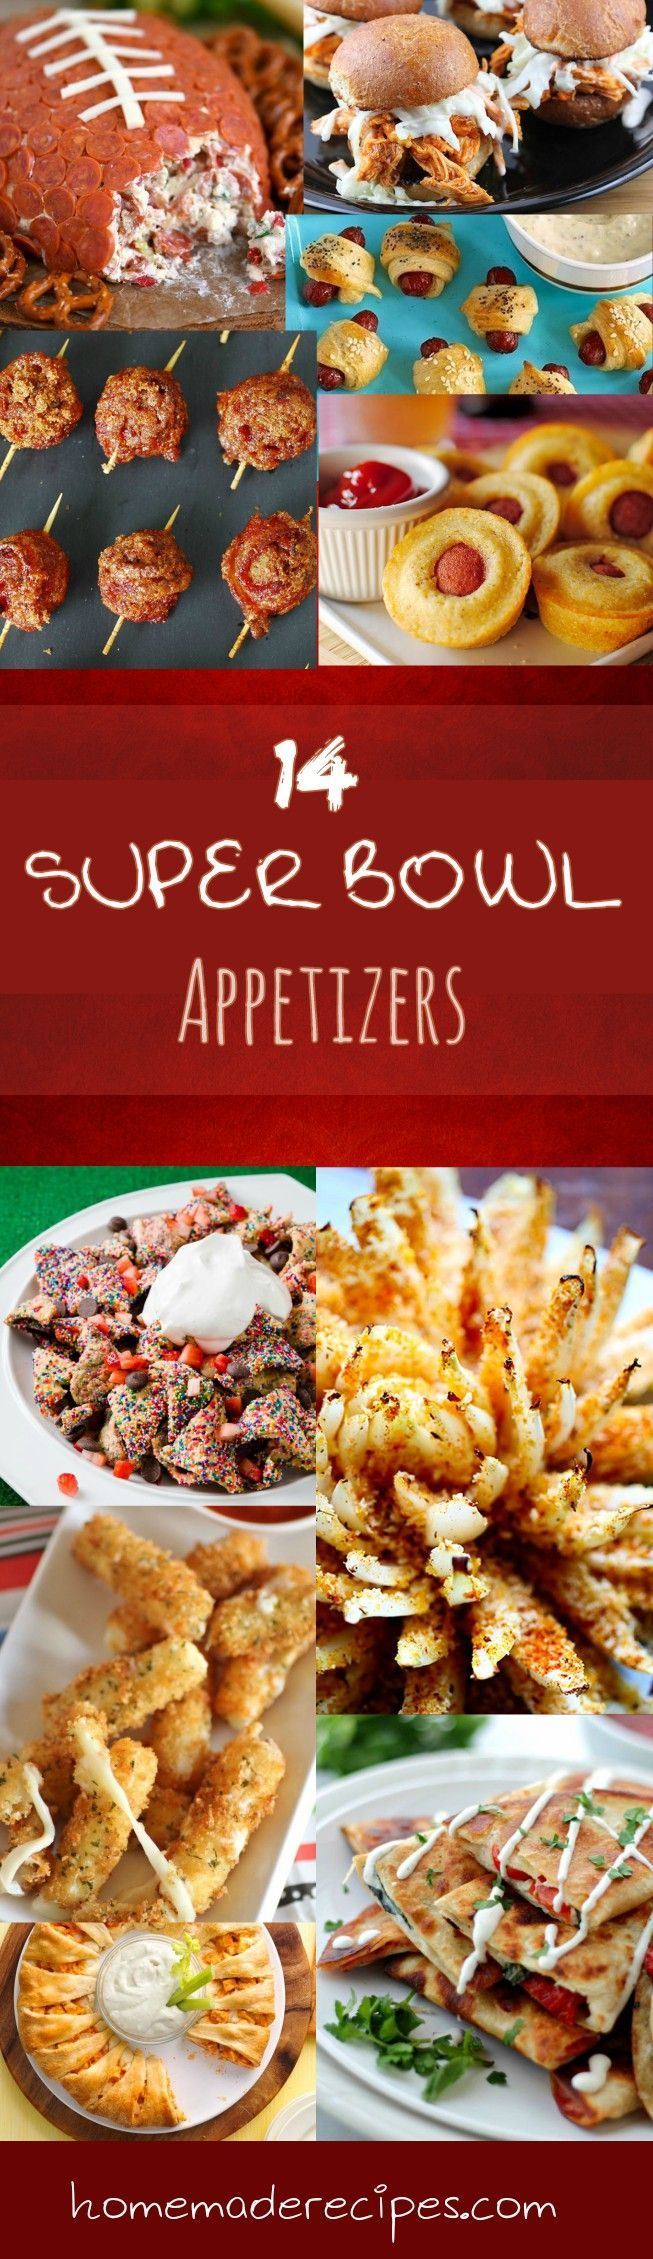 14 Super Bowl Appetizers | Delicious On The Go Food Recipes - A Must For A Big Game! by Homemade Recipes http://homemaderecipes.com/quick-easy-meals/14-super-bowl-appetizers/